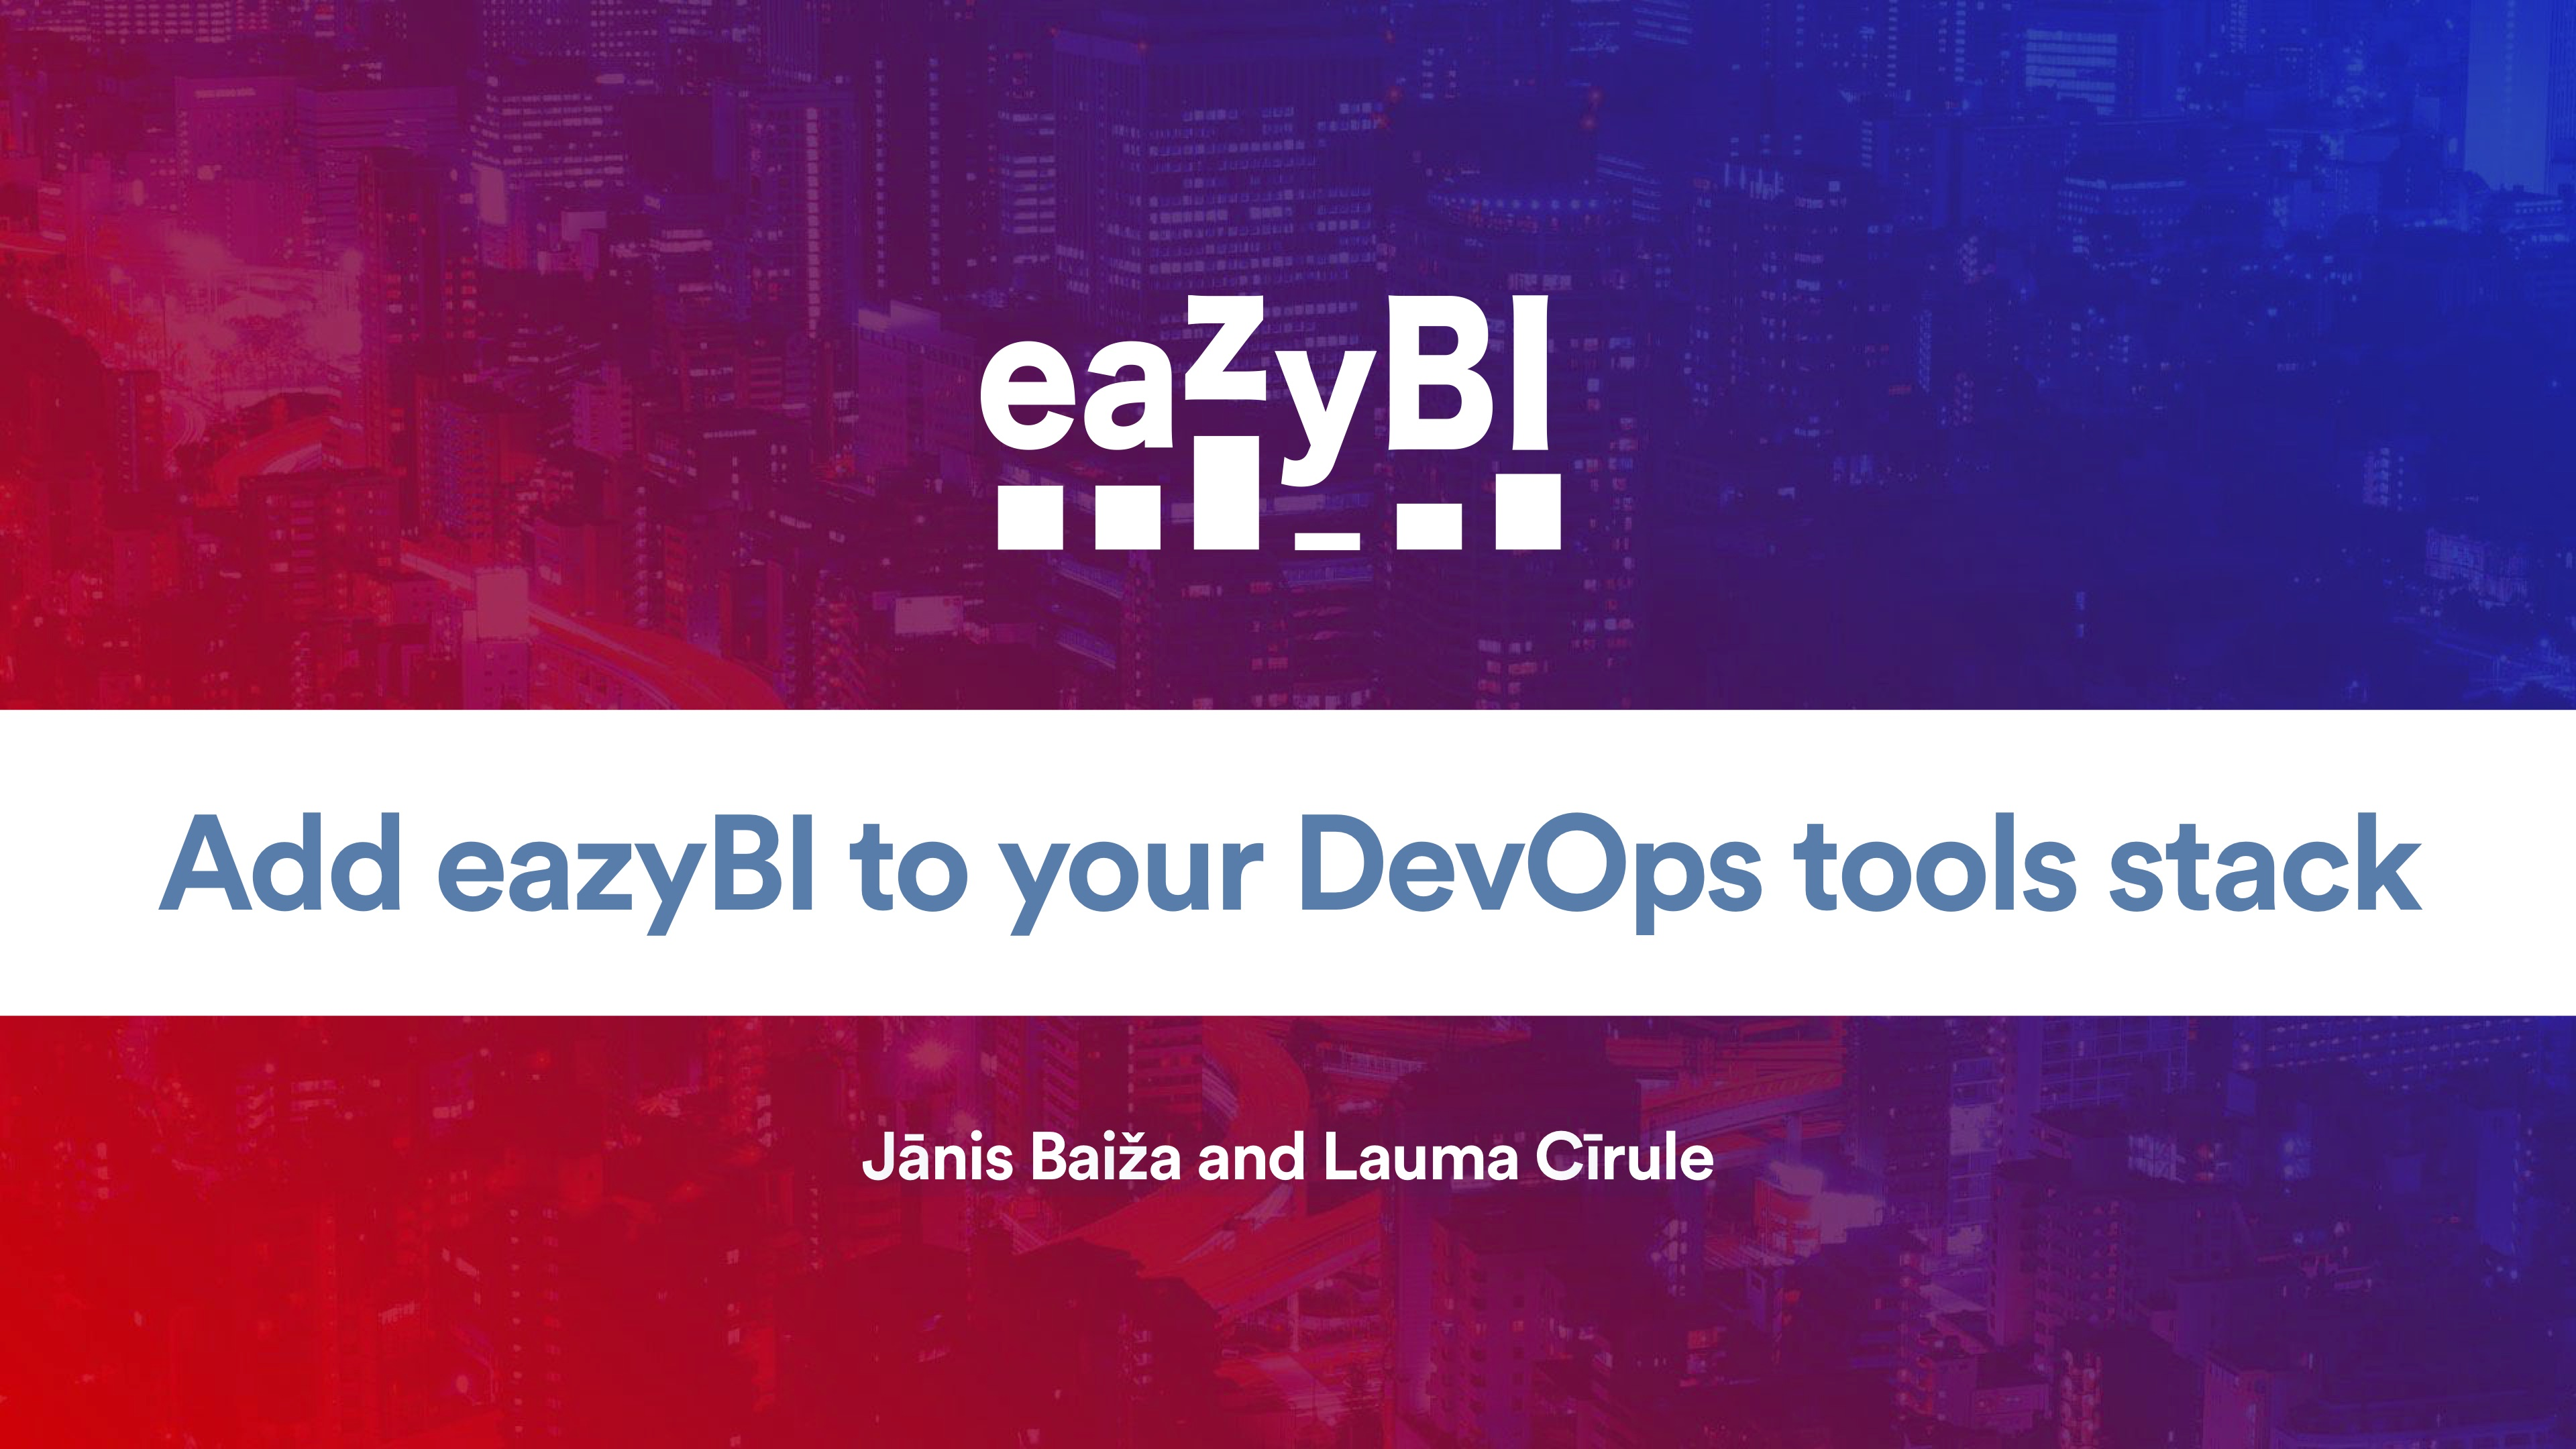 020%20Add%20eazyBI%20to%20Your%20DevOps%20Tools%20Stack